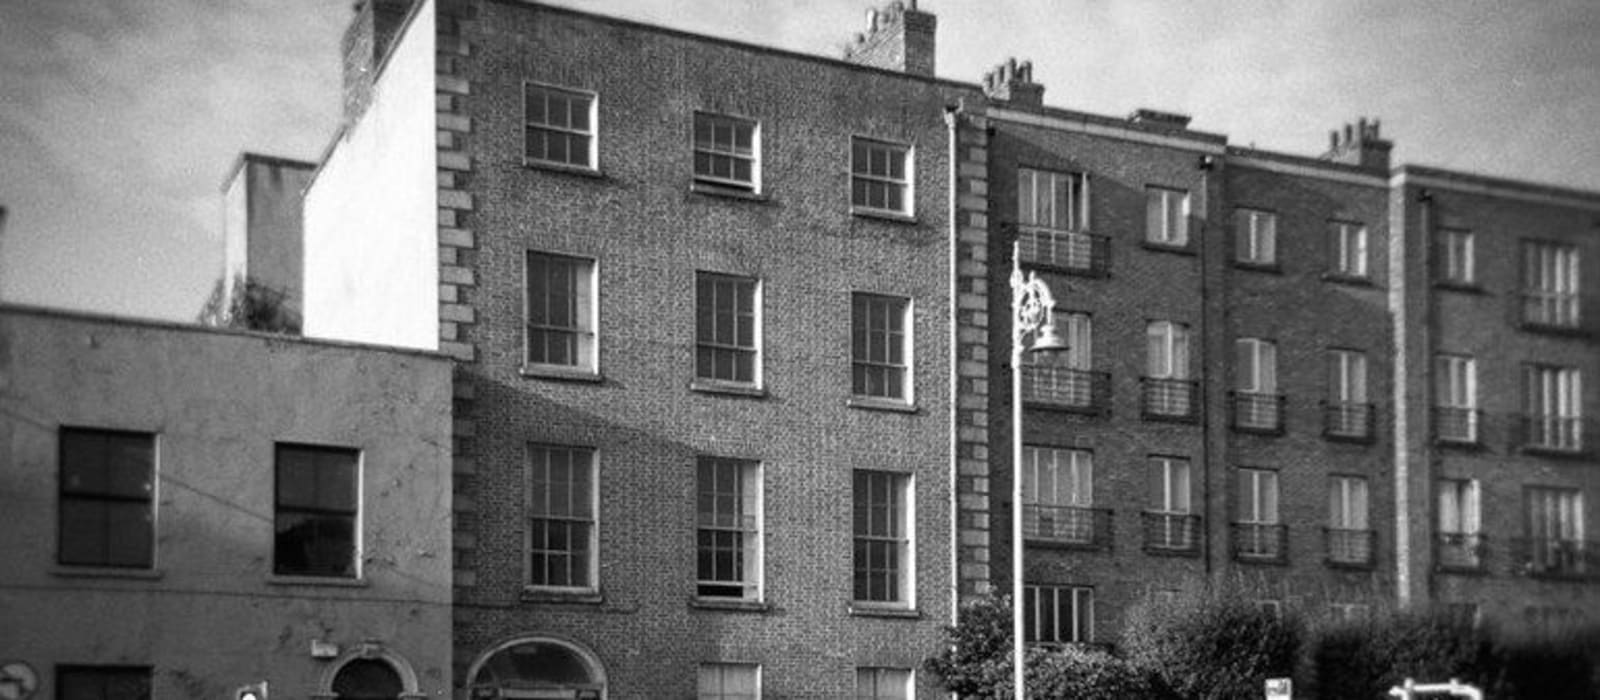 Permission granted for conversion of James Joyce's House of the Dead to hostel